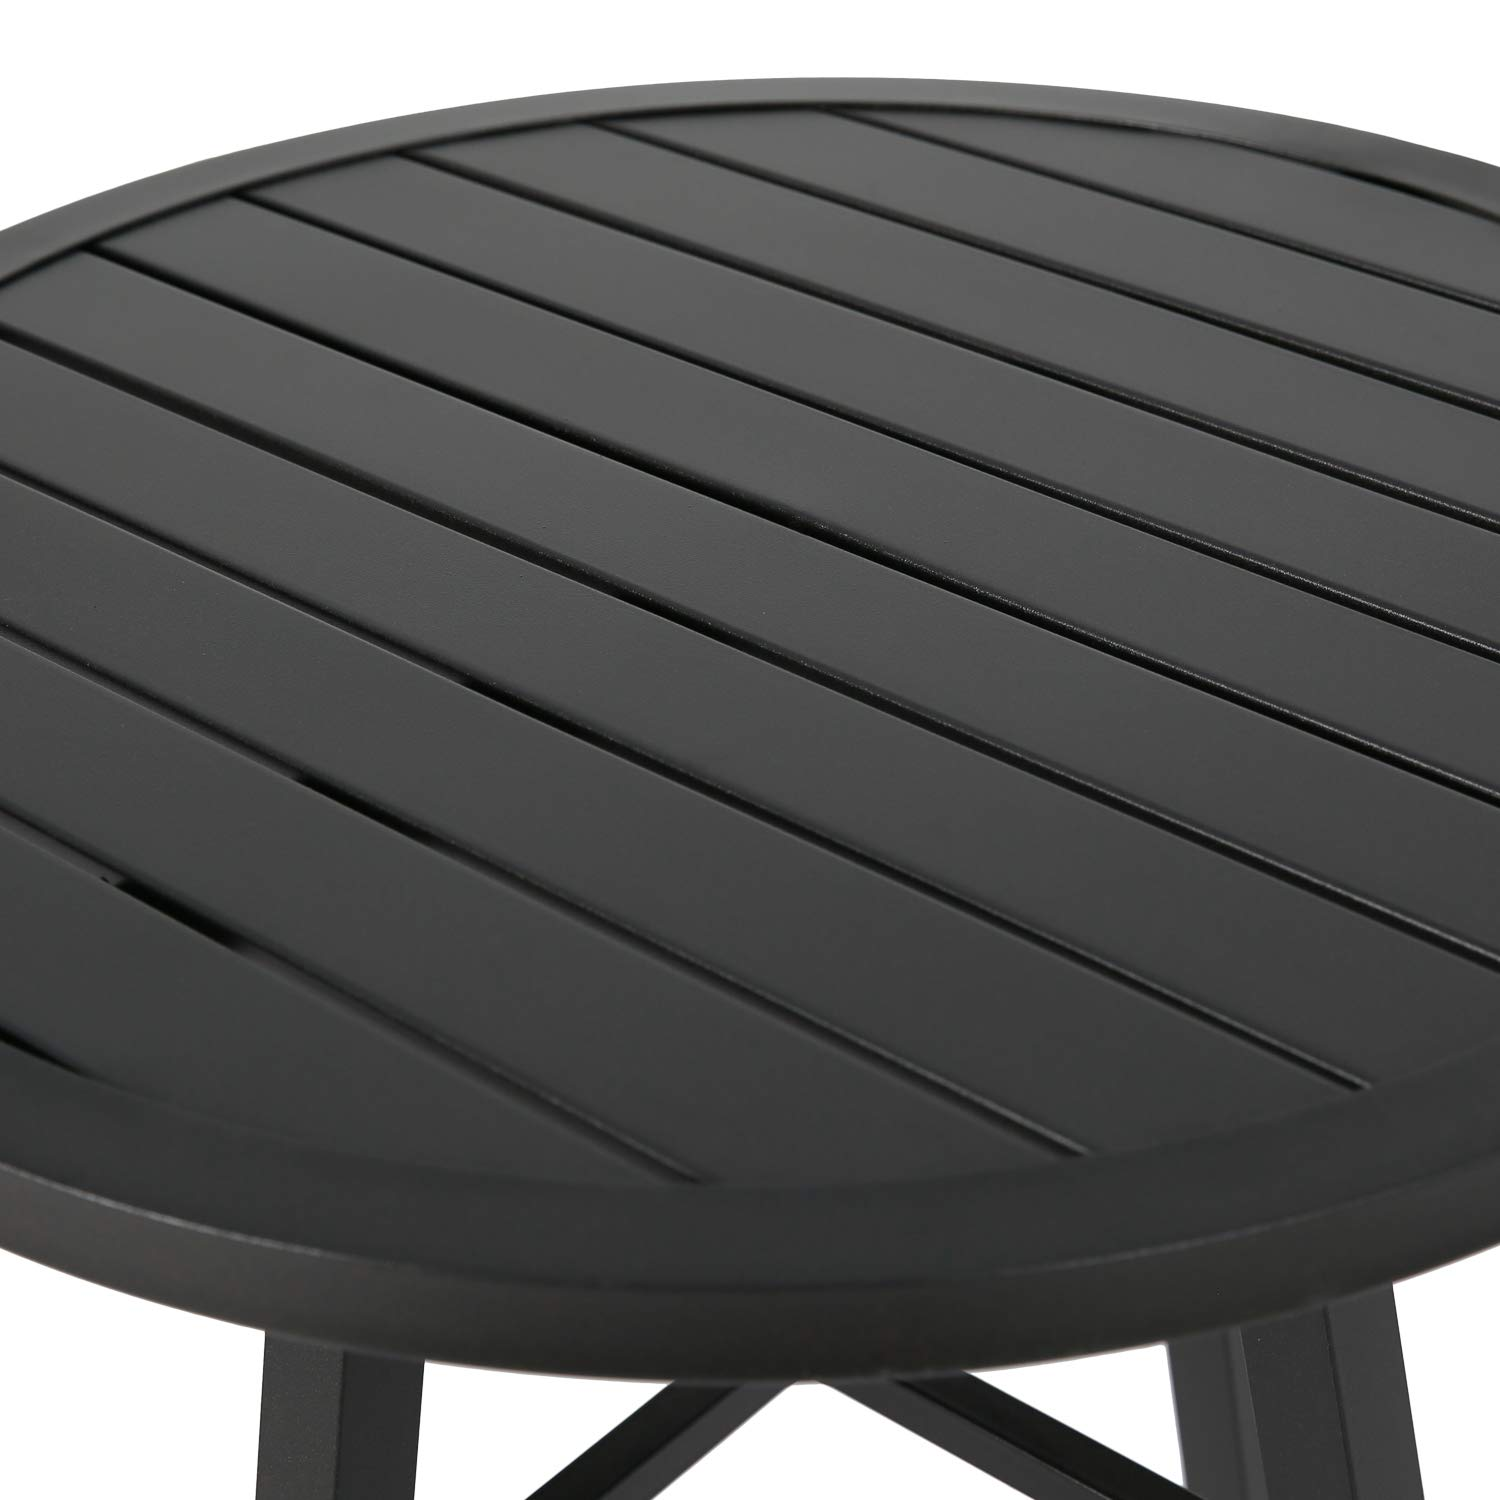 Ulax furniture Outdoor Round Side Table, Patio Coffee Bistro Table by Ulax furniture (Image #3)